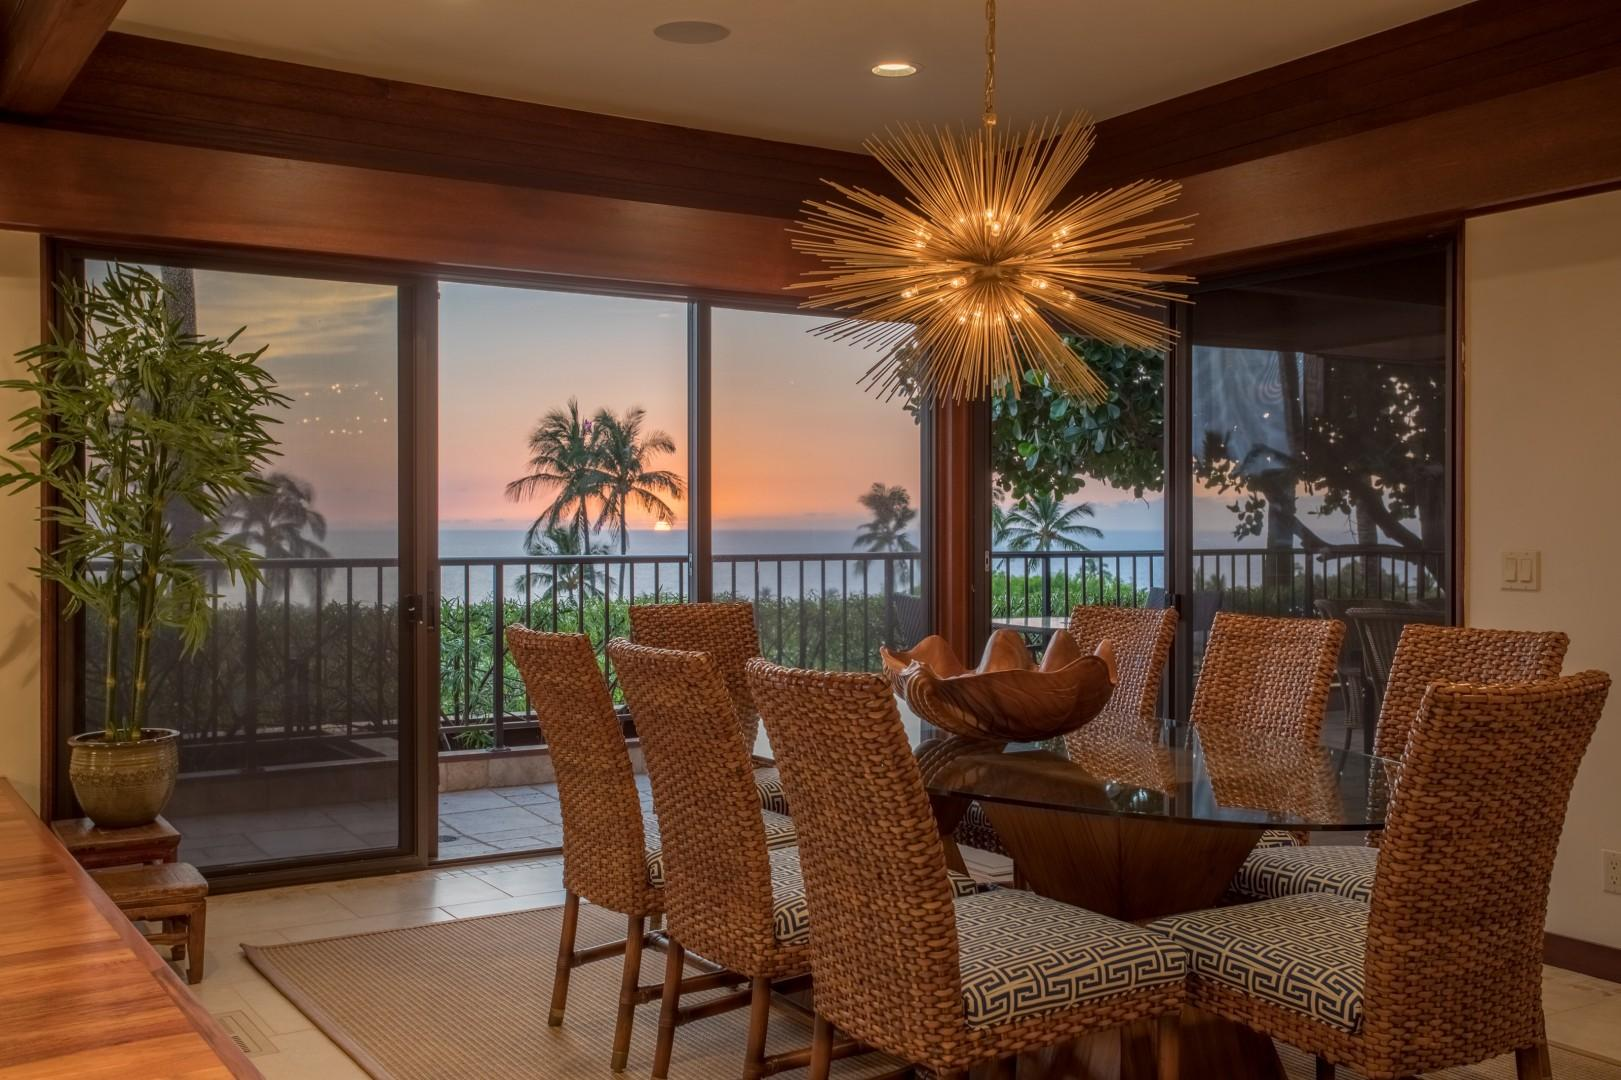 Sunset views over the Pacific from dining area and almost every room in the house.